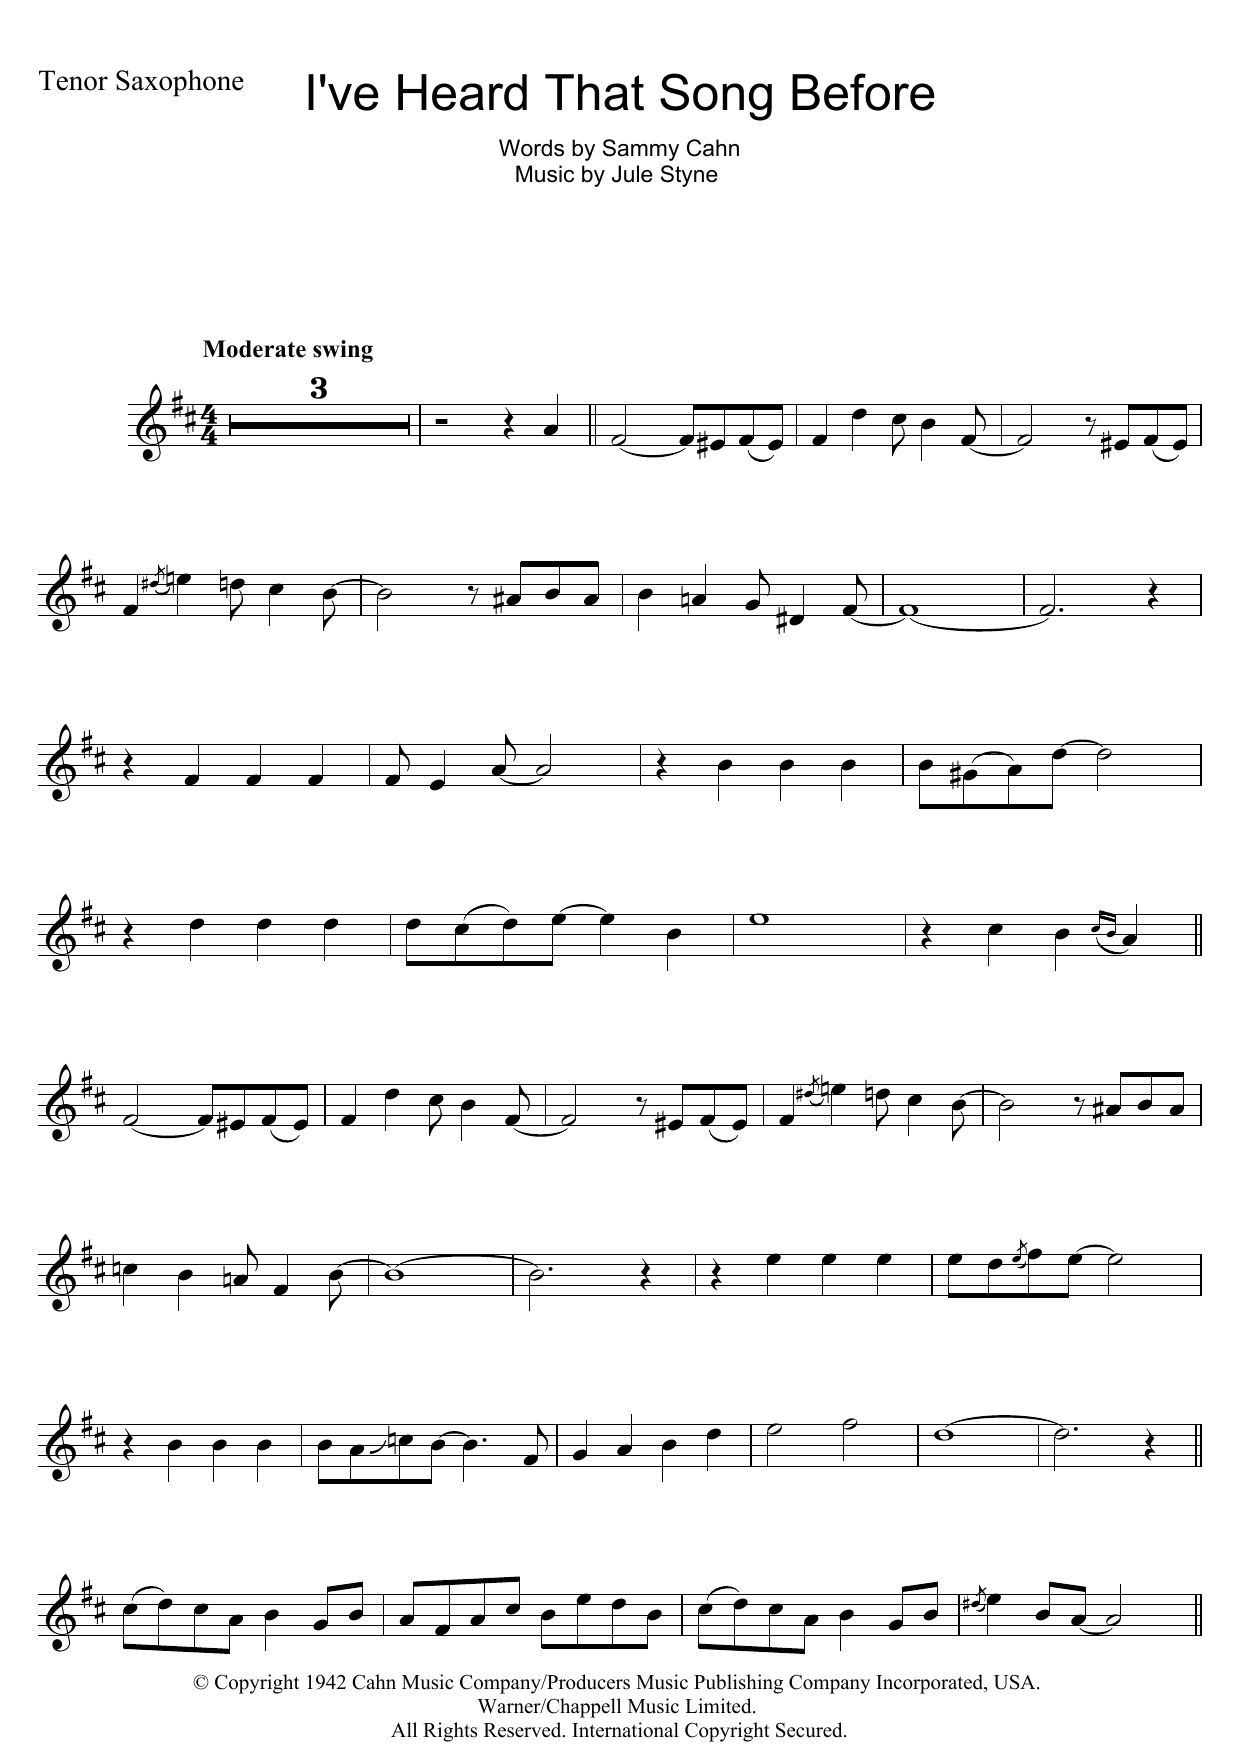 I've Heard That Song Before (Tenor Sax Solo)